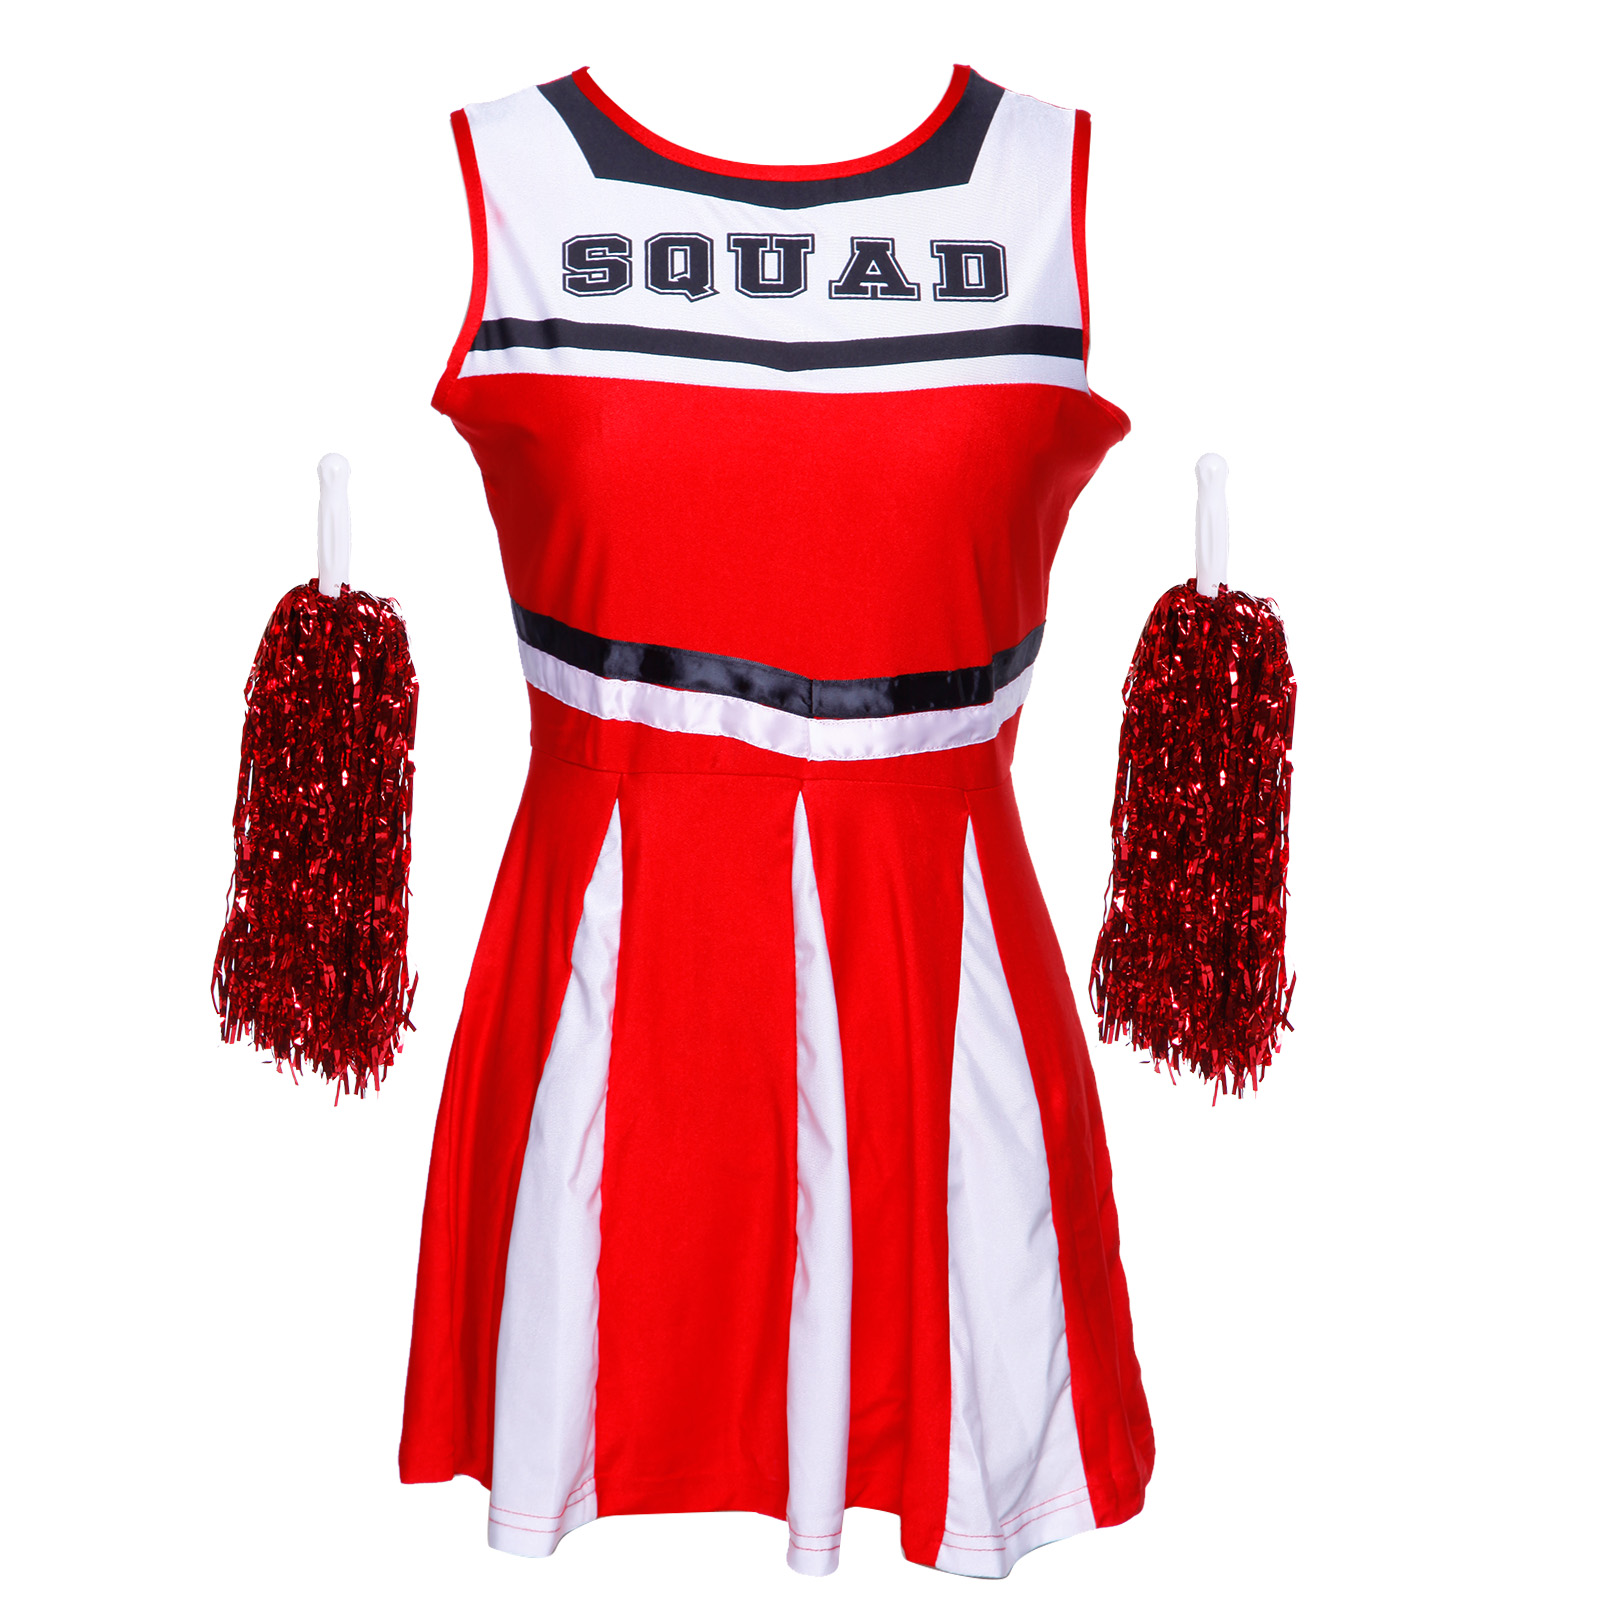 Cheerleader-Fancy-Dress-Outfit-High-School-Musical-Cheer-Uniform-Costume-Pompoms miniature 3